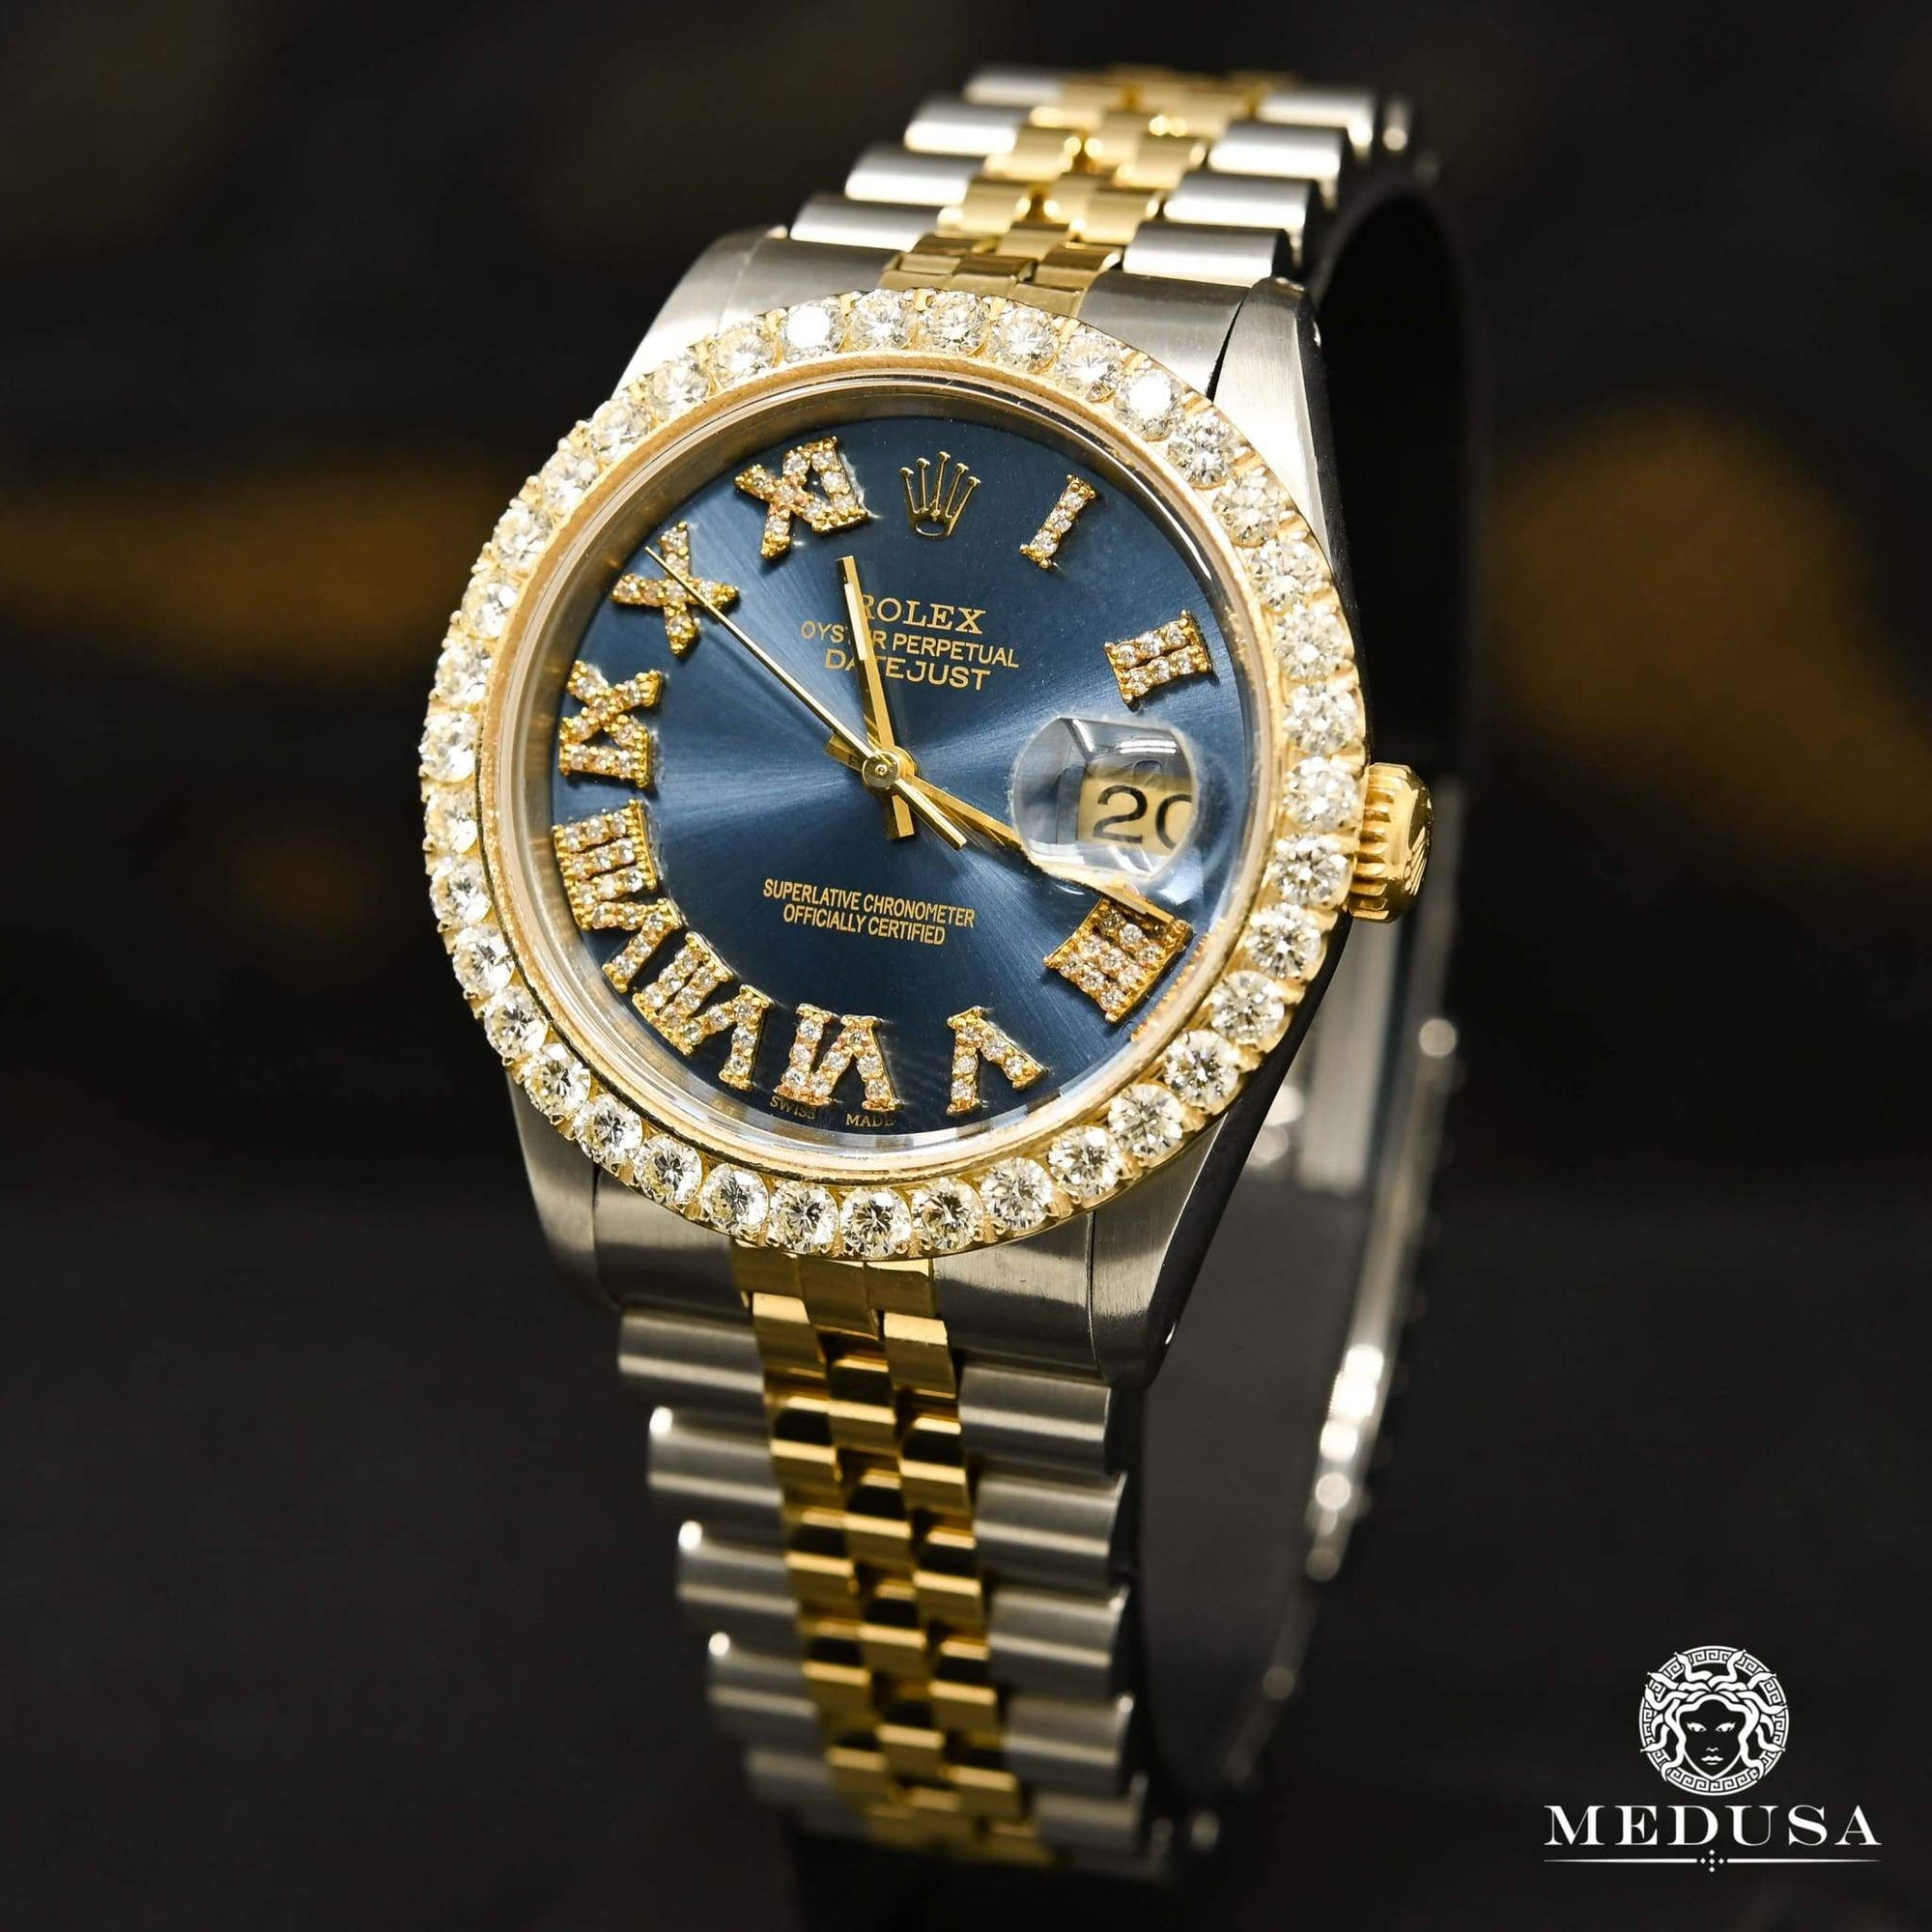 Rolex Datejust 36mm - Navy Chiffre Romain